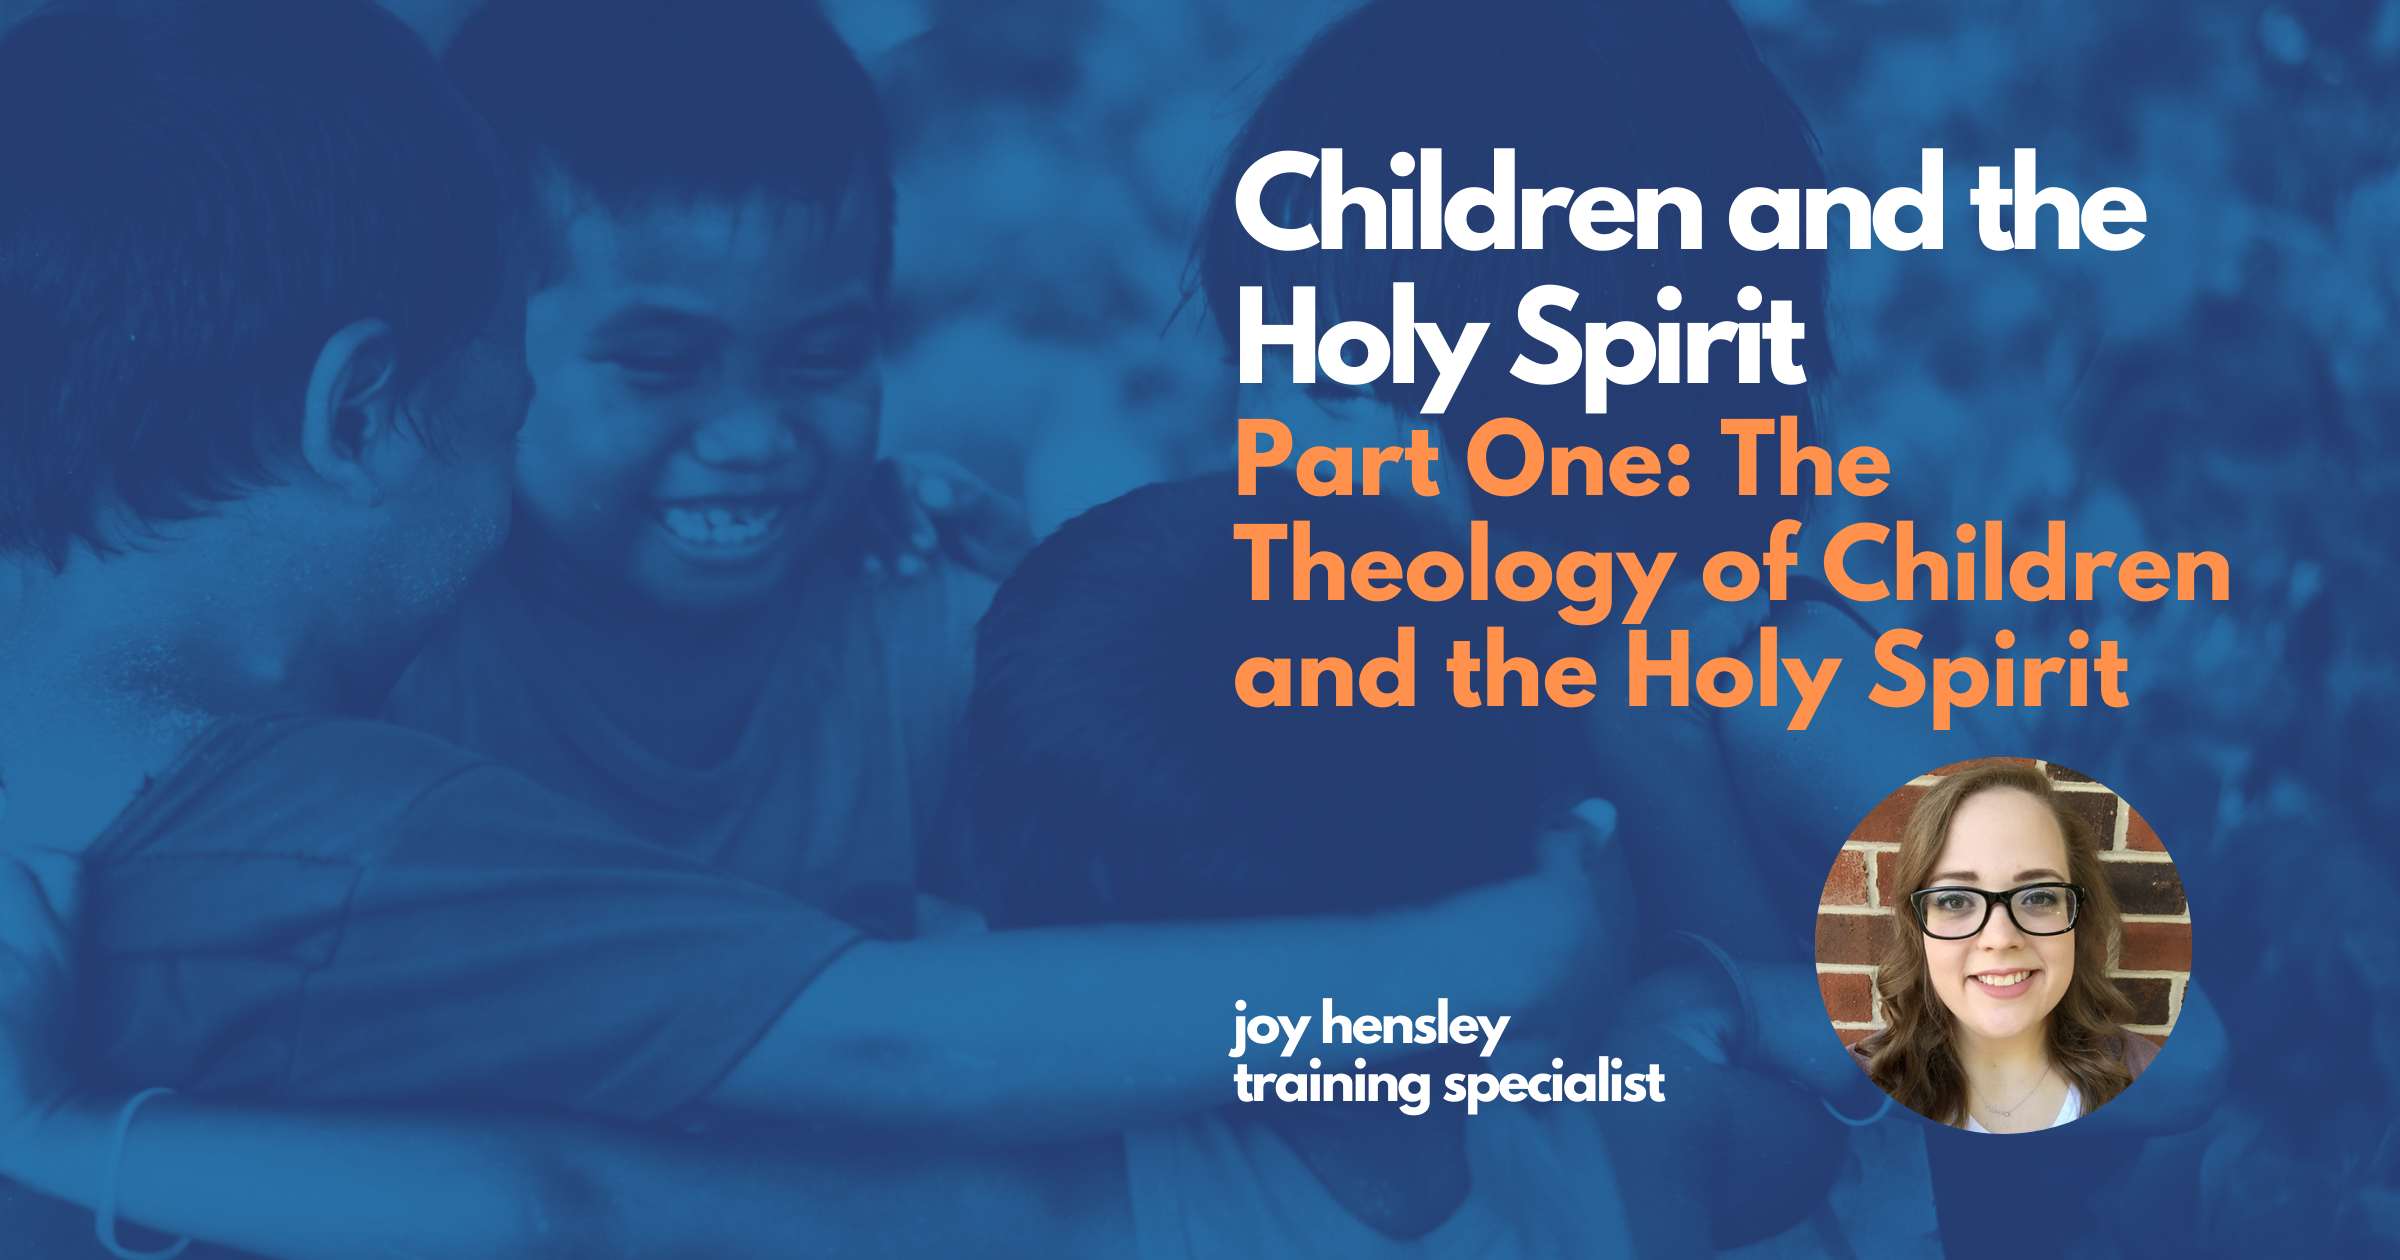 A Theology of Children and the Holy Spirit